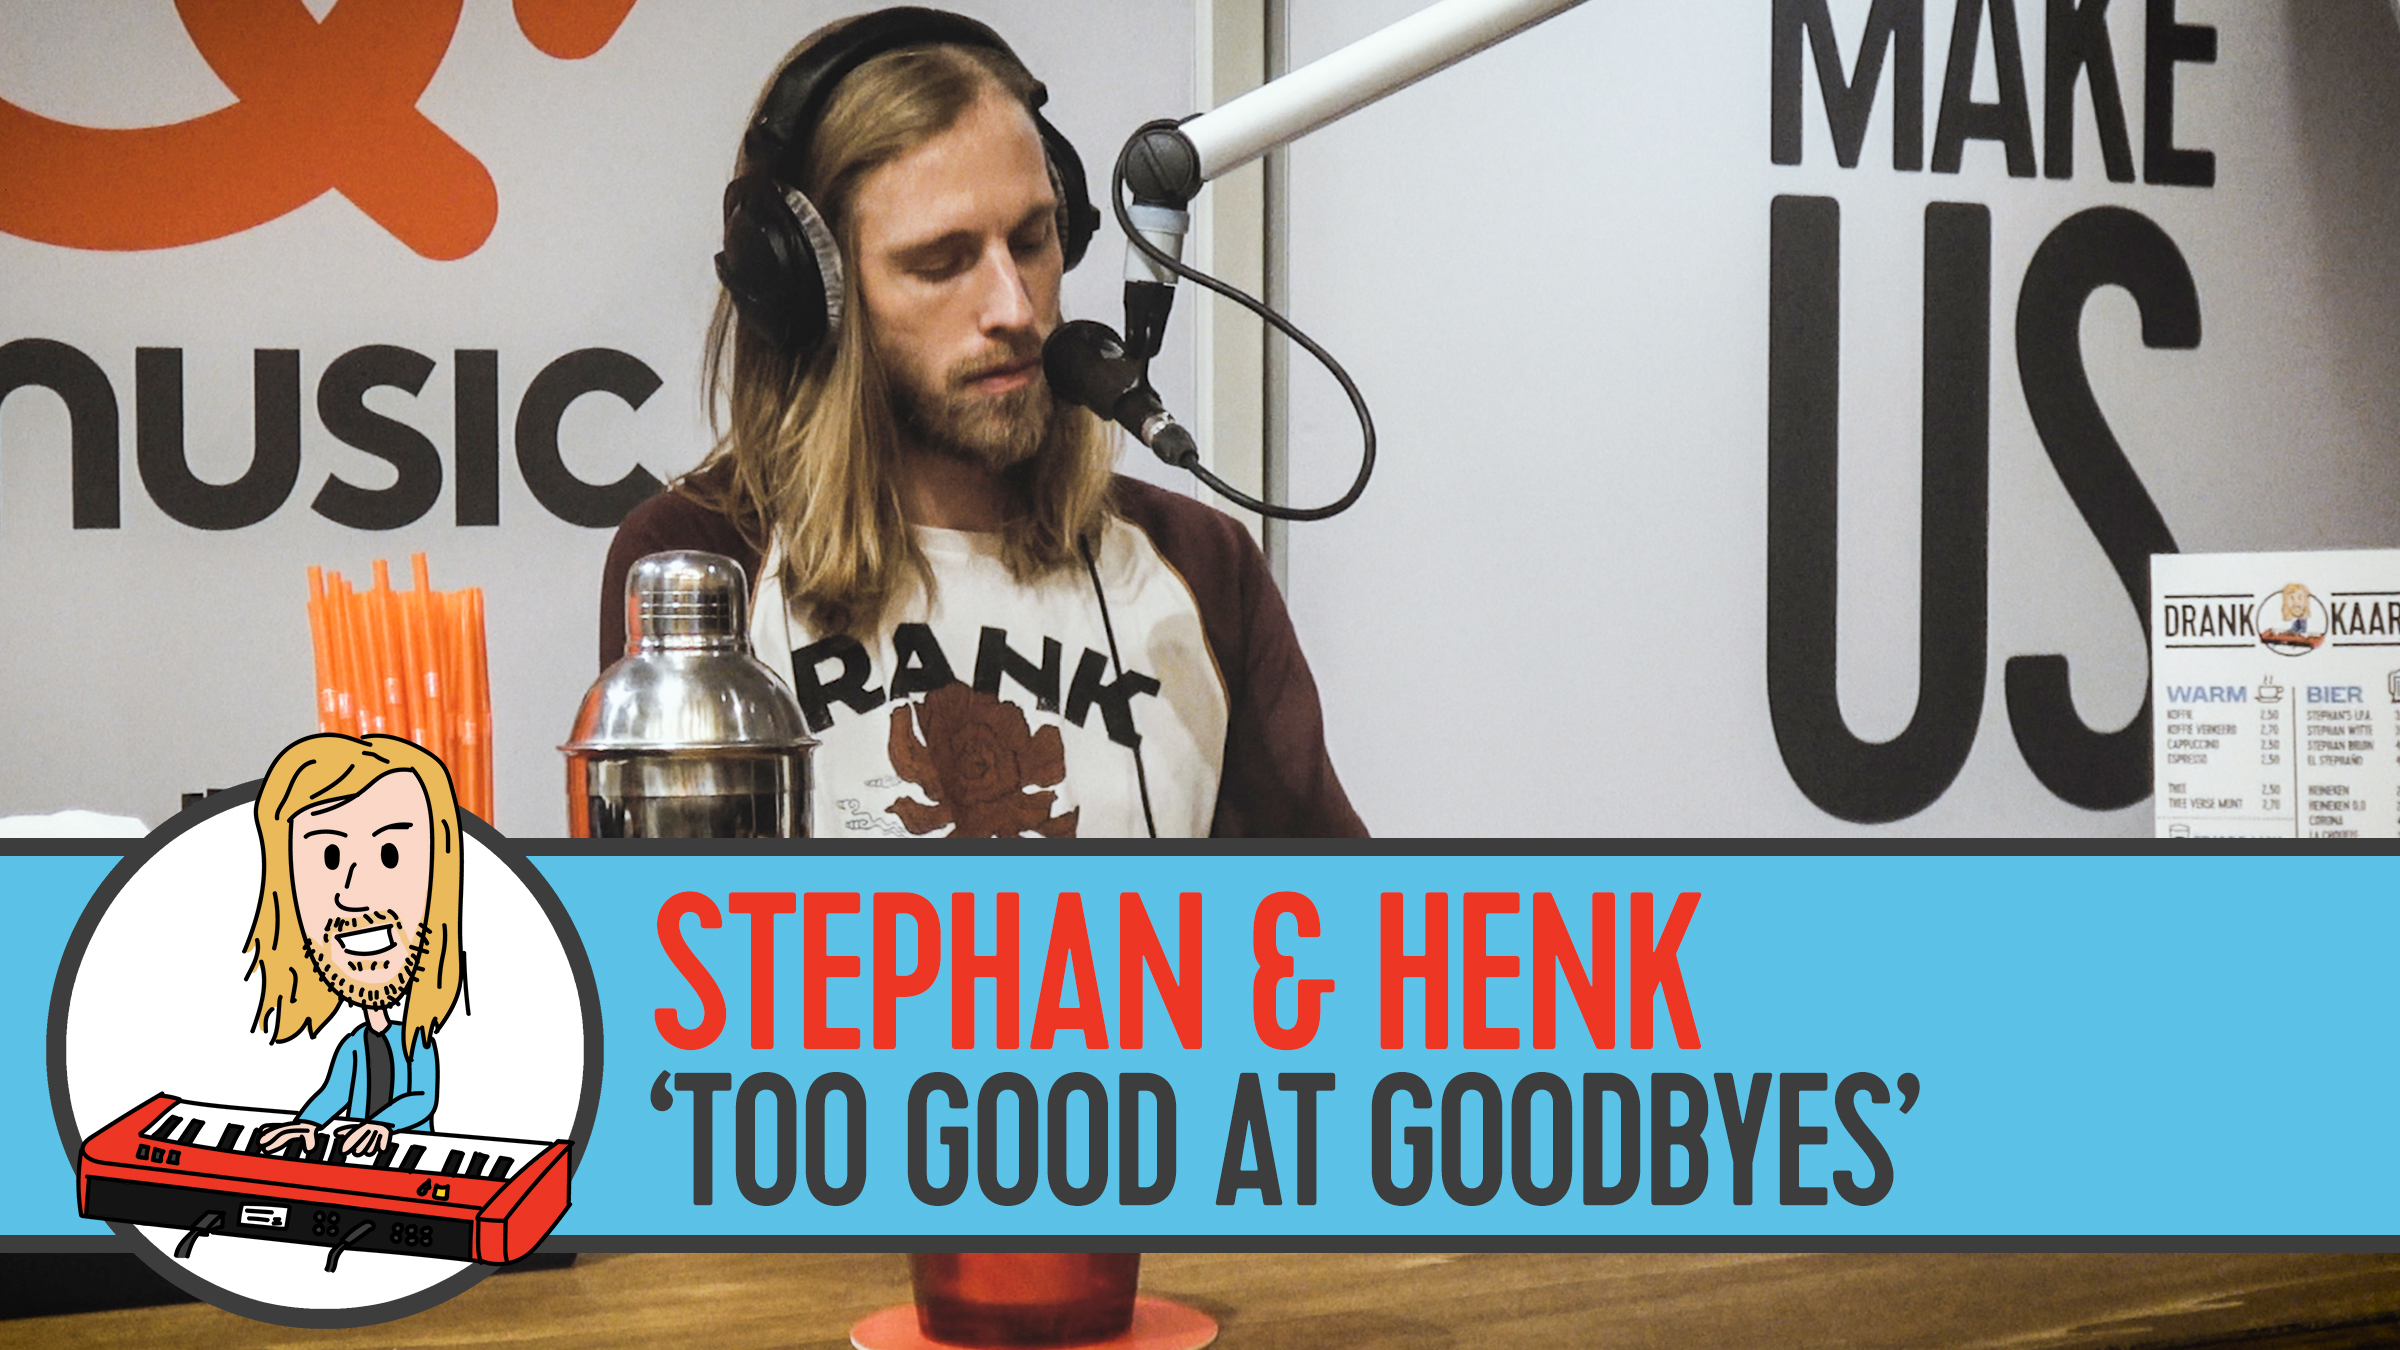 Stephan   henk   too good at goodbyes   thumb v1